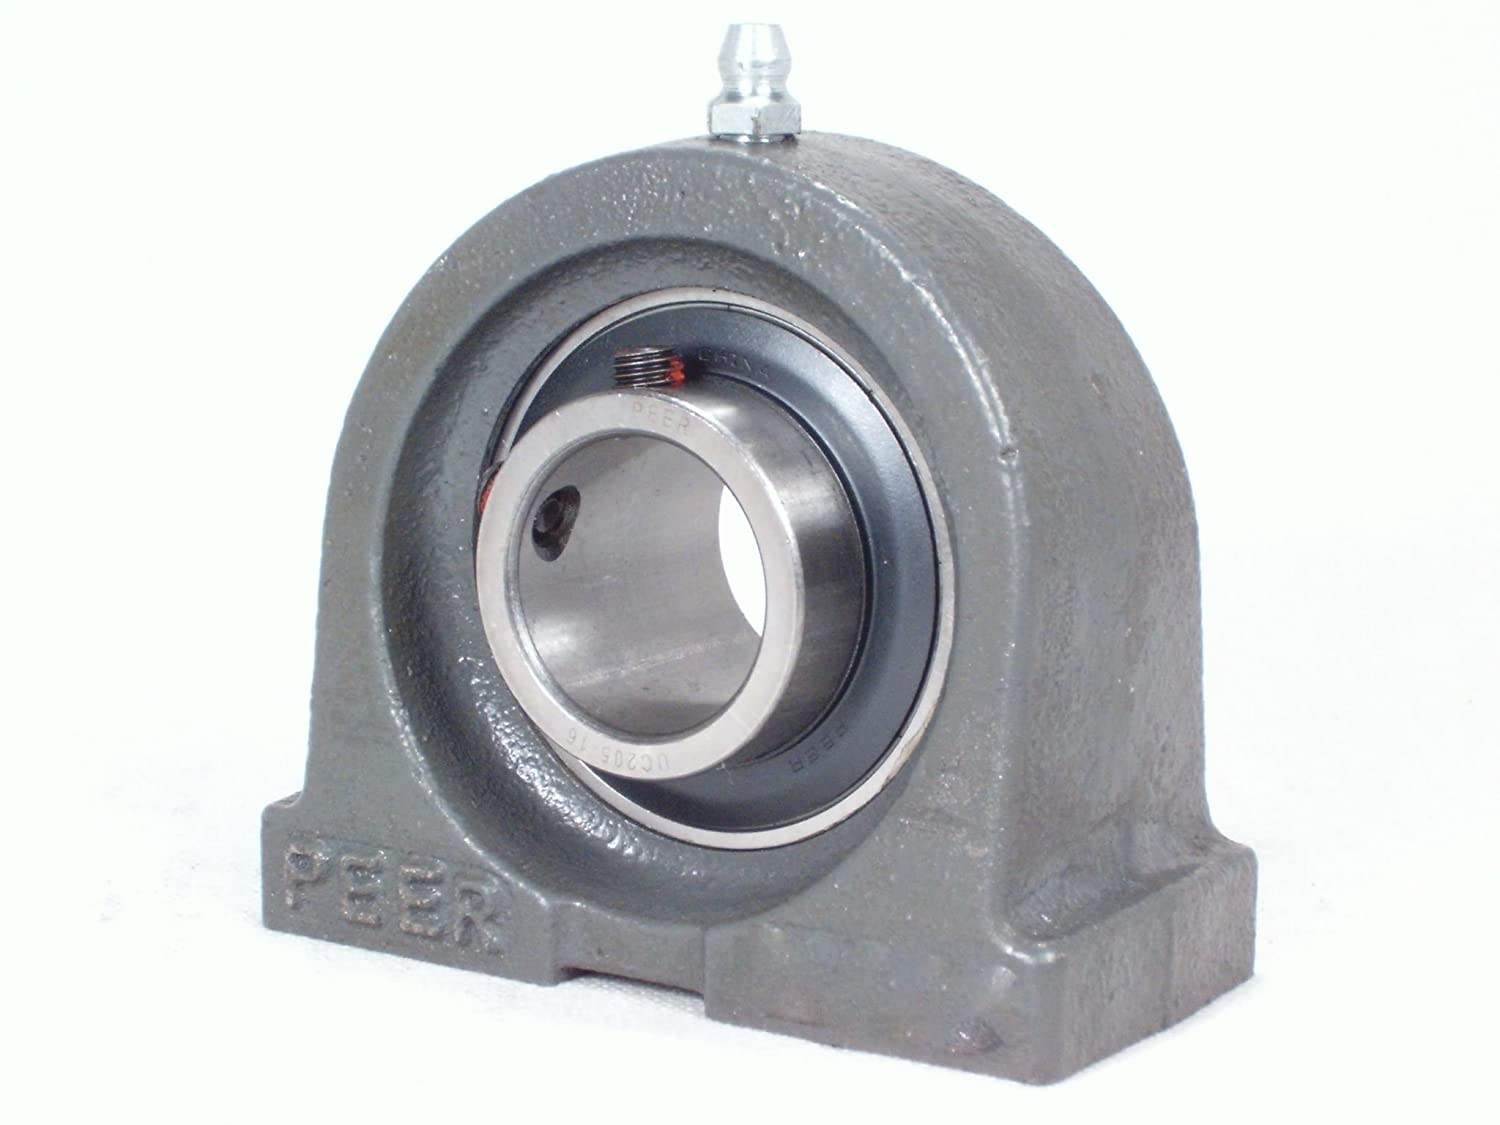 Excellent Peer Bearing FHPA209-26G Pillow Block Base NEW before selling Tapped Iron Ho Cast